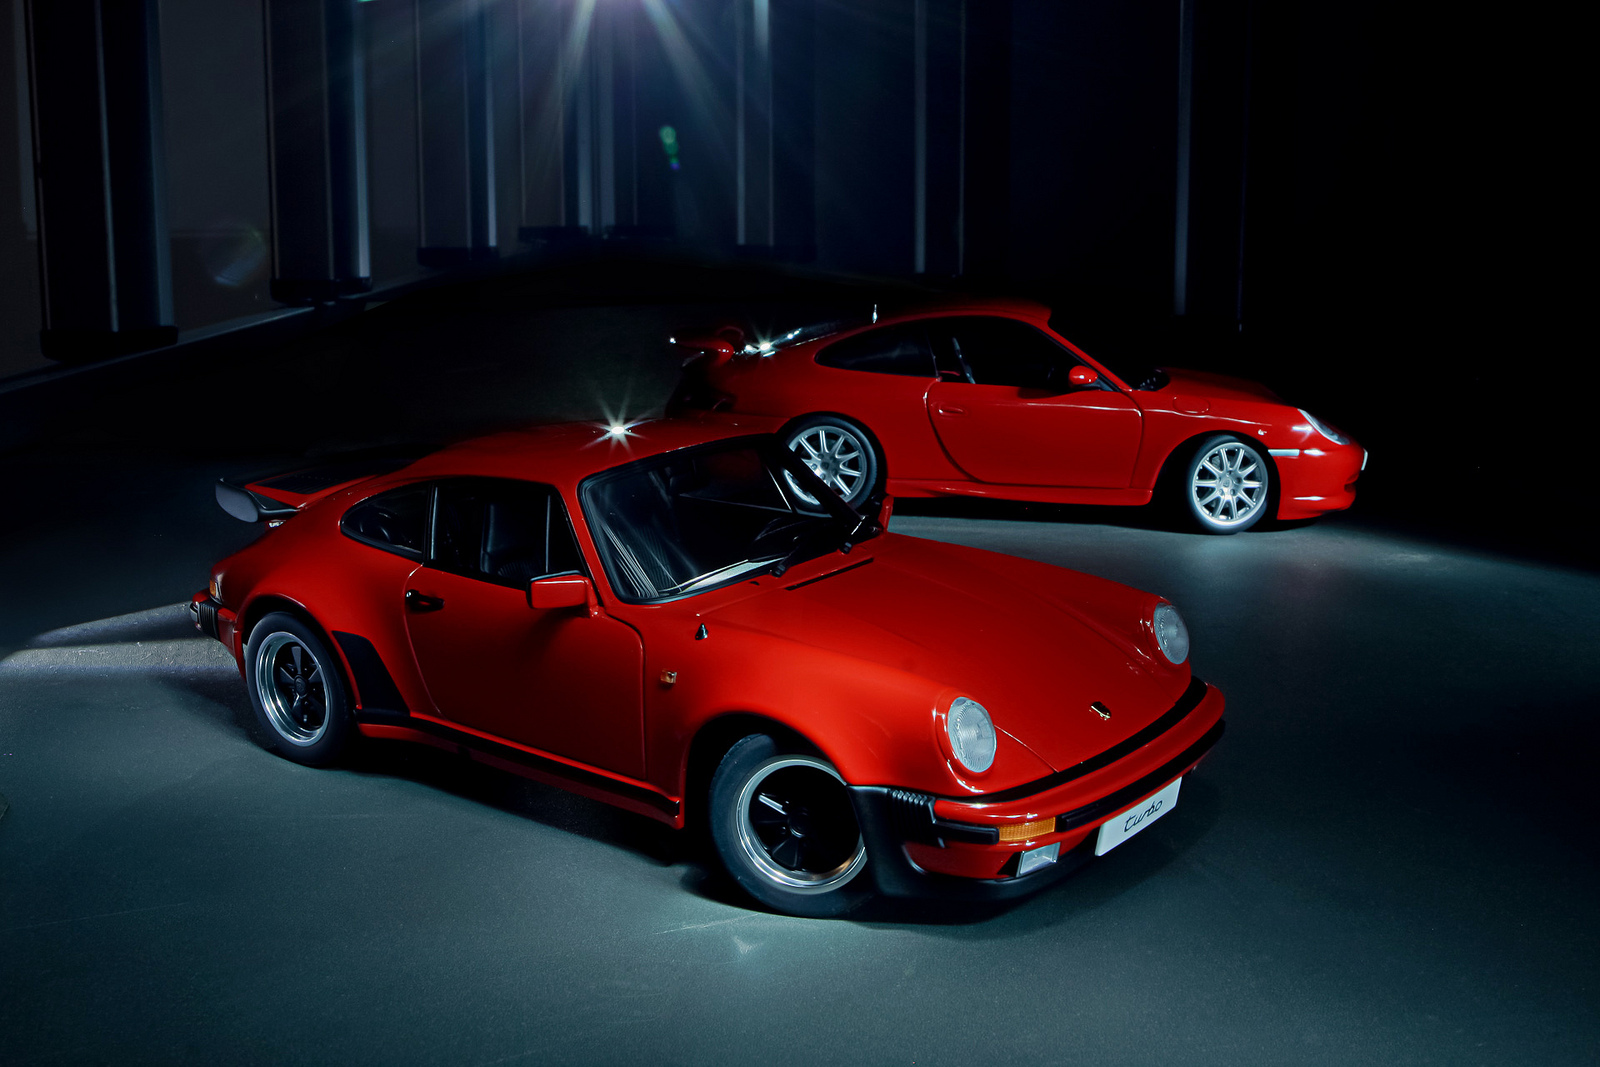 1986 Porsche 911 3.3 turbo + 1999 Porsche 911 GT3 | Flickr - Photo ...